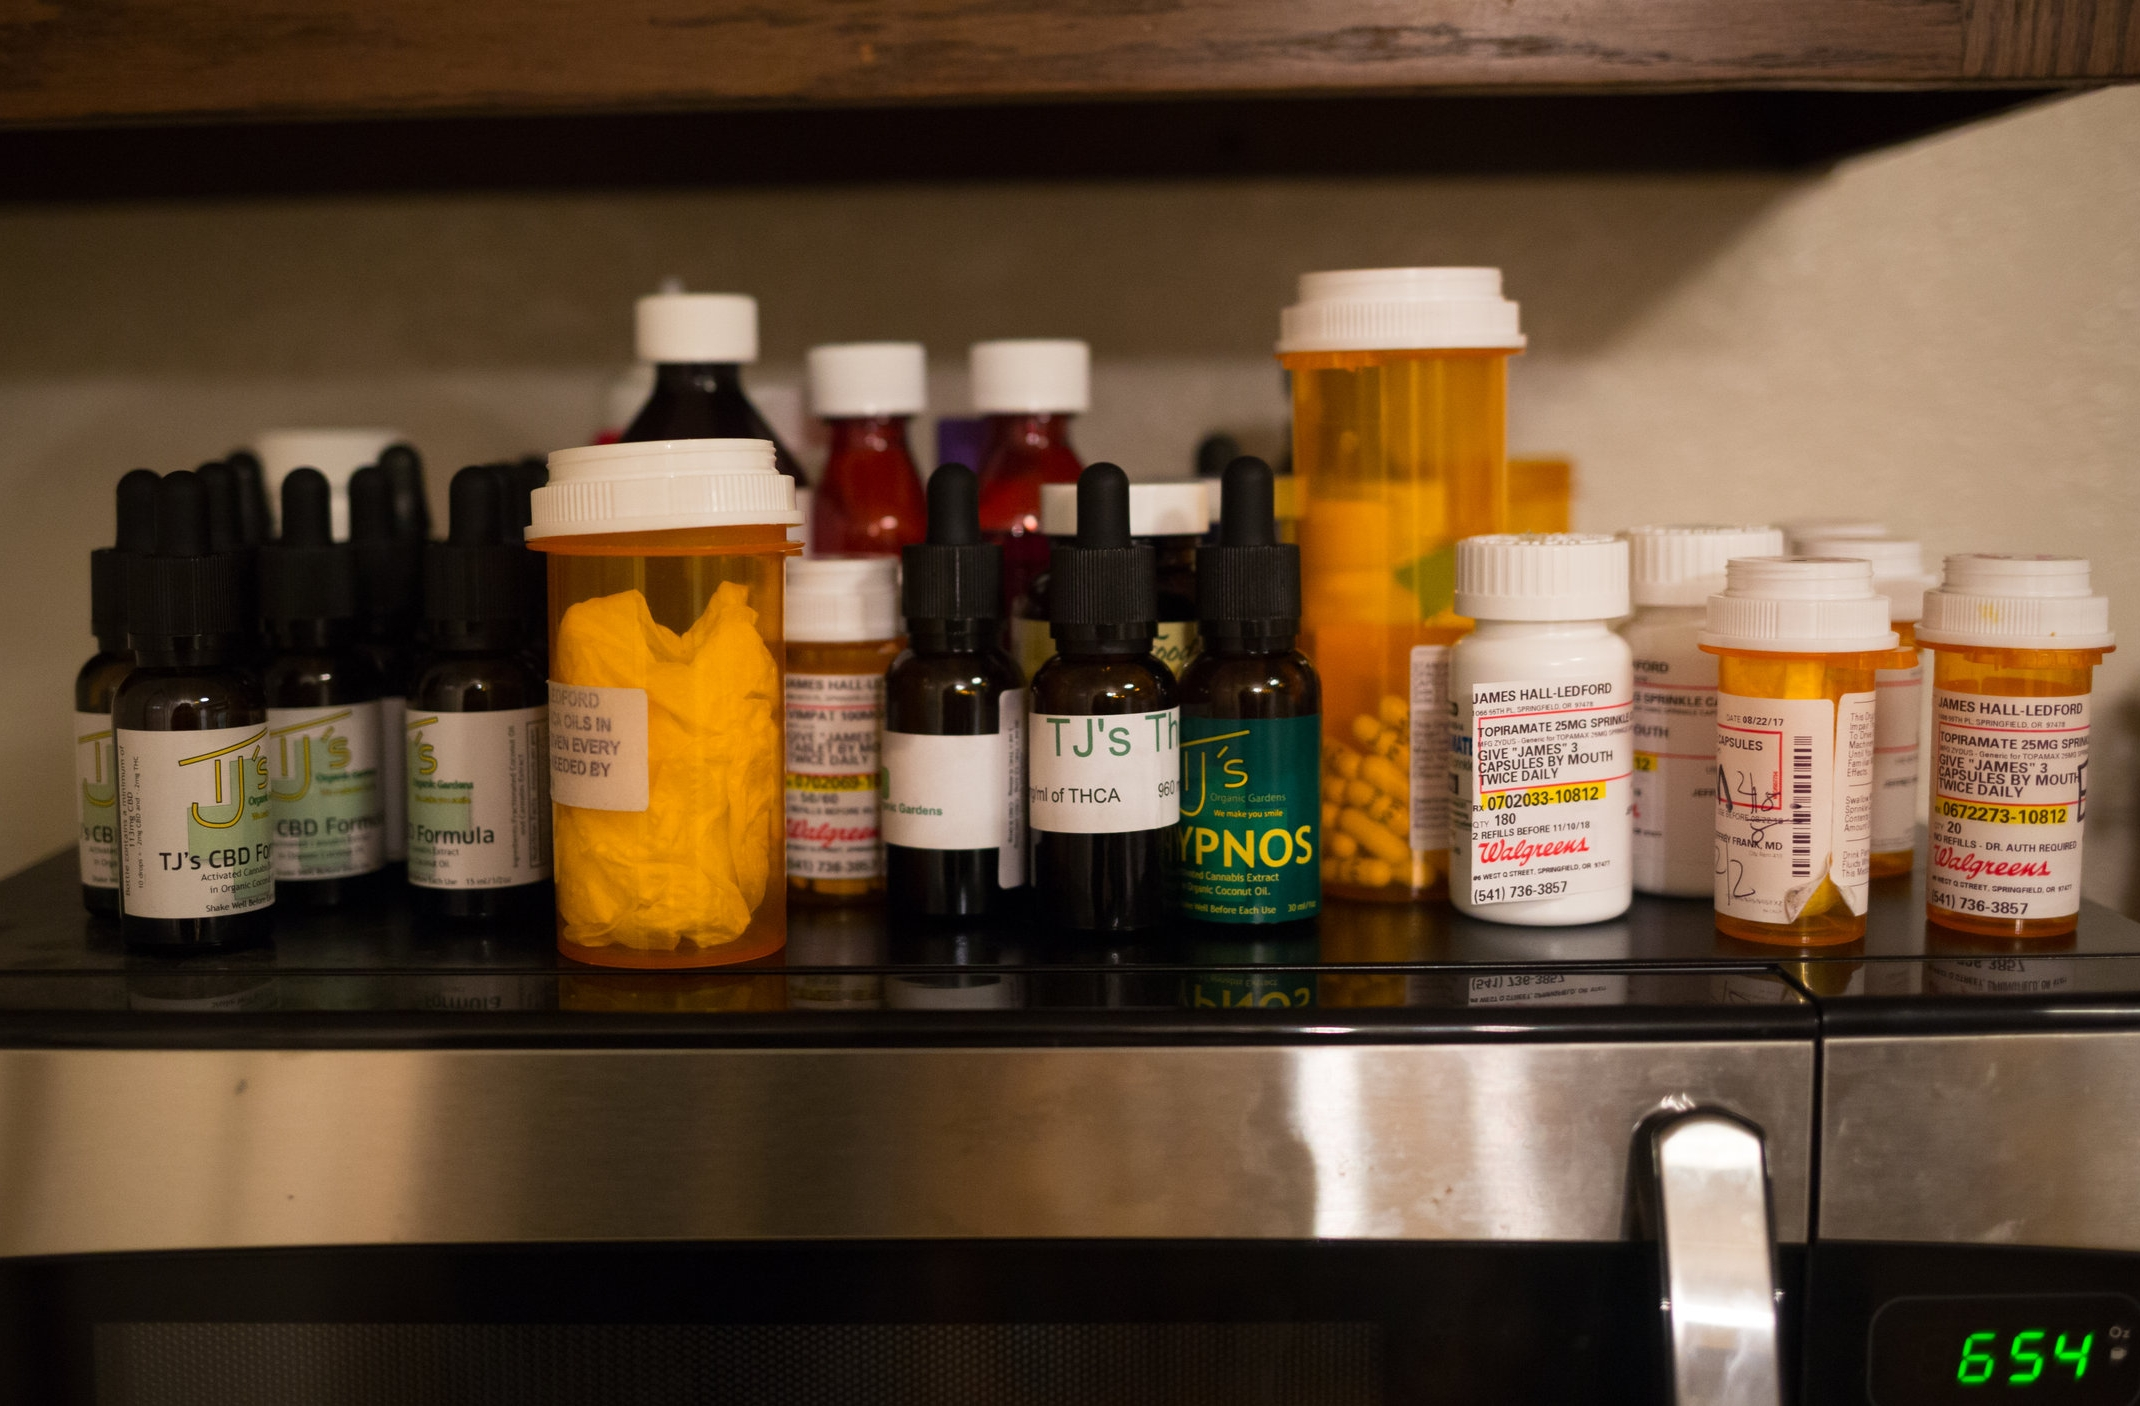 A various combination of pharmaceutical and cannabis derived medicines above the kitchen microwave. James is still not entirely pharm-free. He remains on a low dose of his former prescribed treatment along with the CBD, THC and THCA oils.